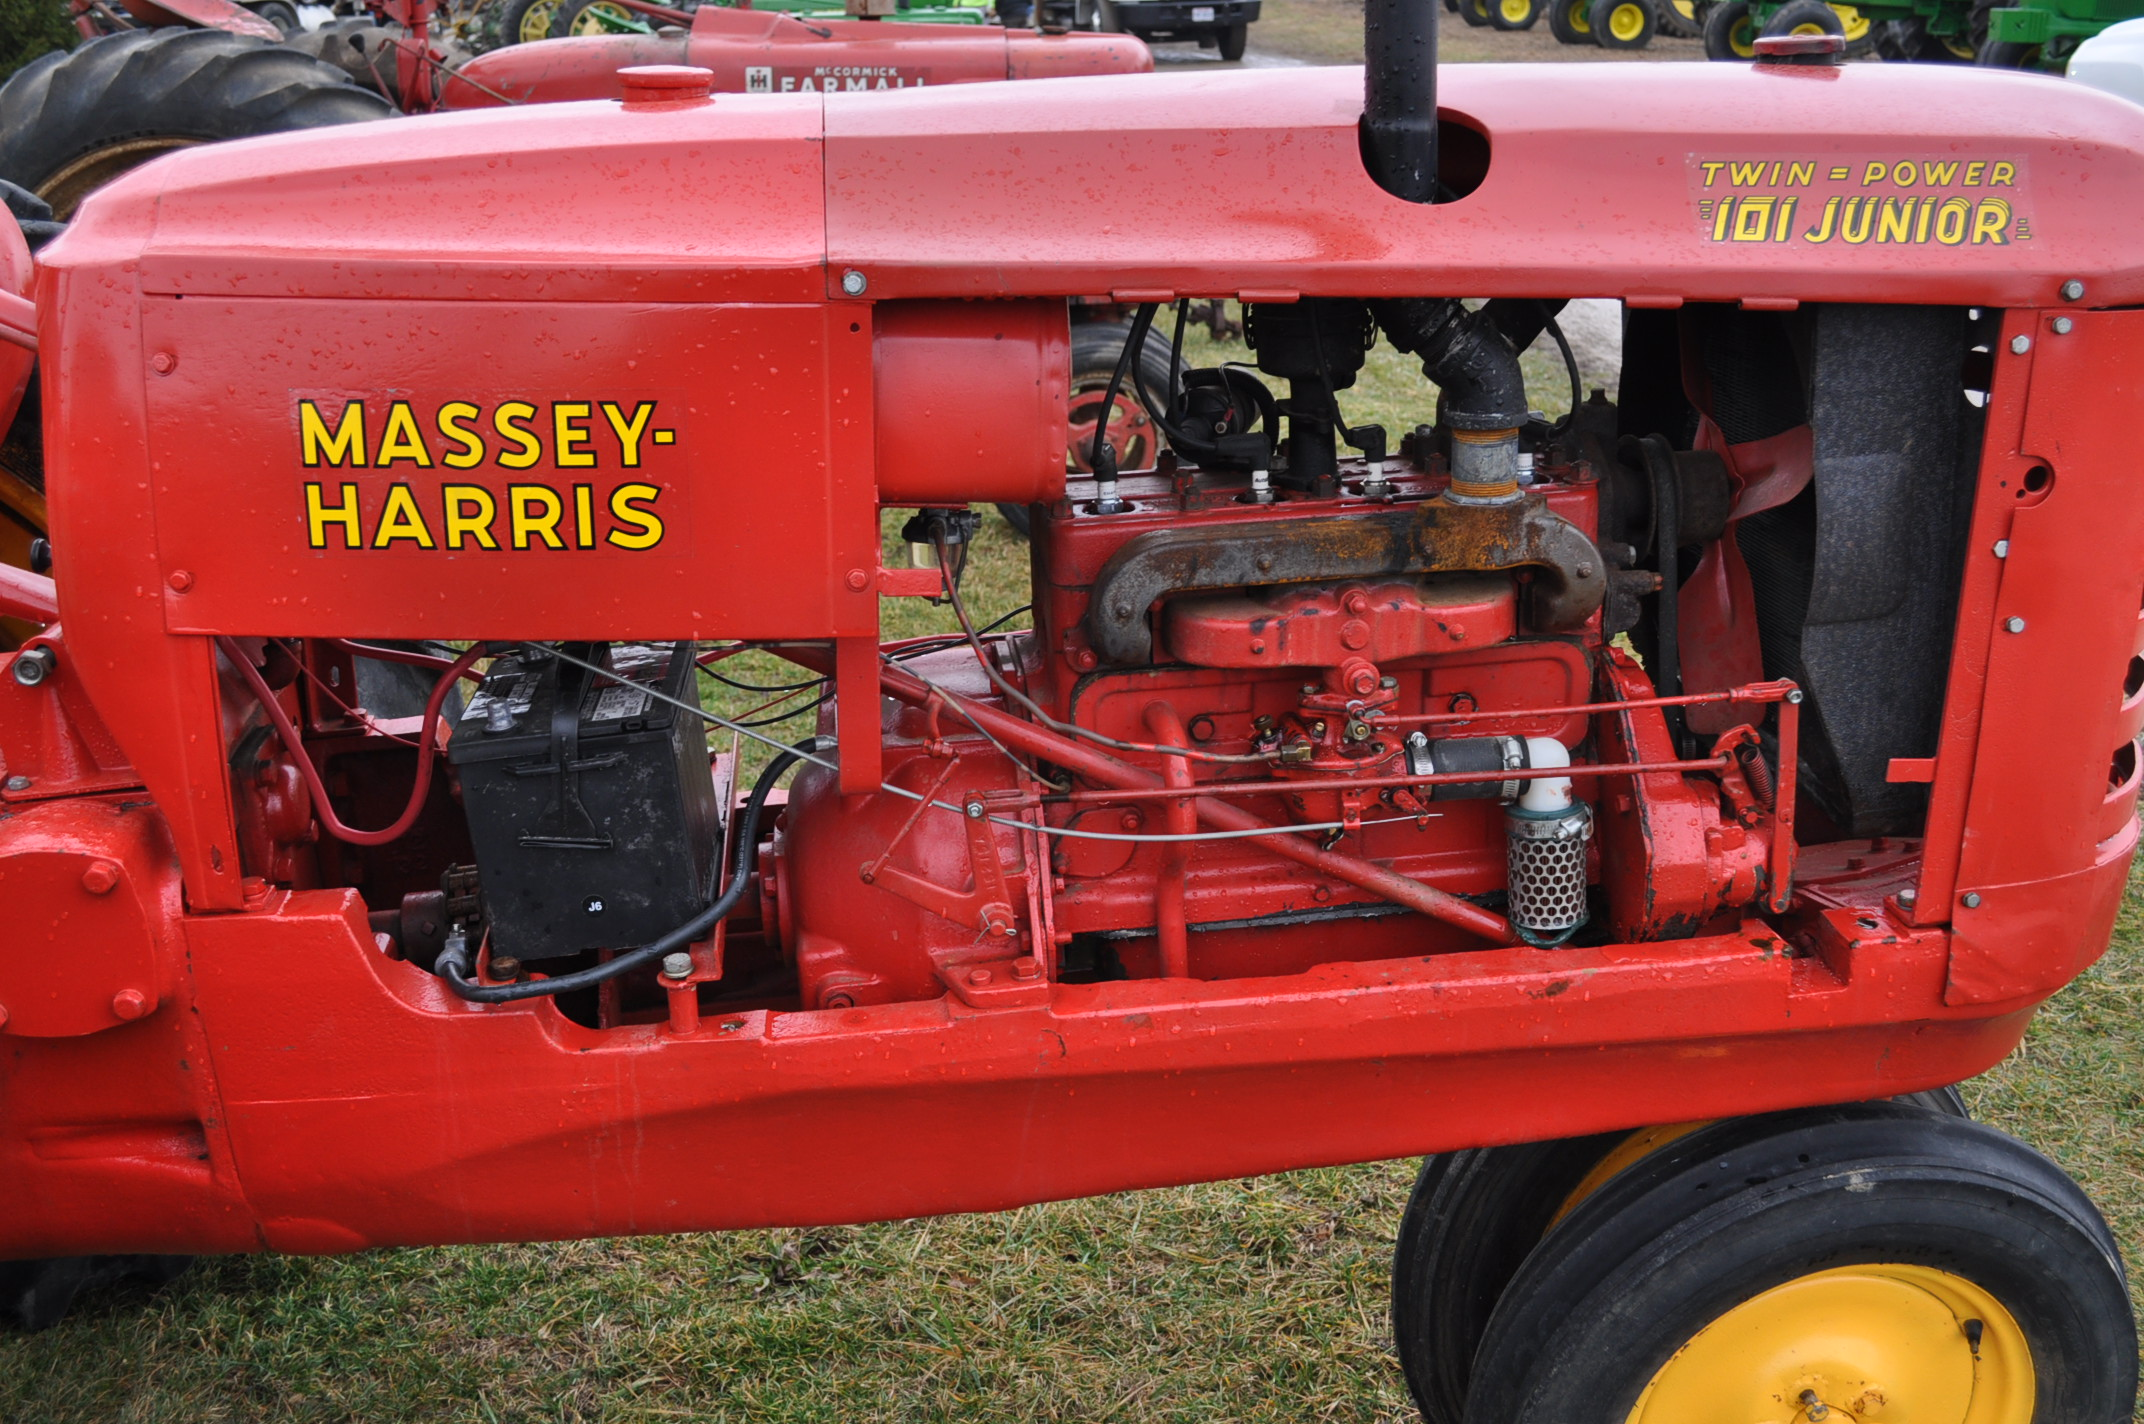 Massey Harris 101 Junior tractor, 12-38 tires, narrow front, 540 pto, SN 501605 - Image 8 of 12